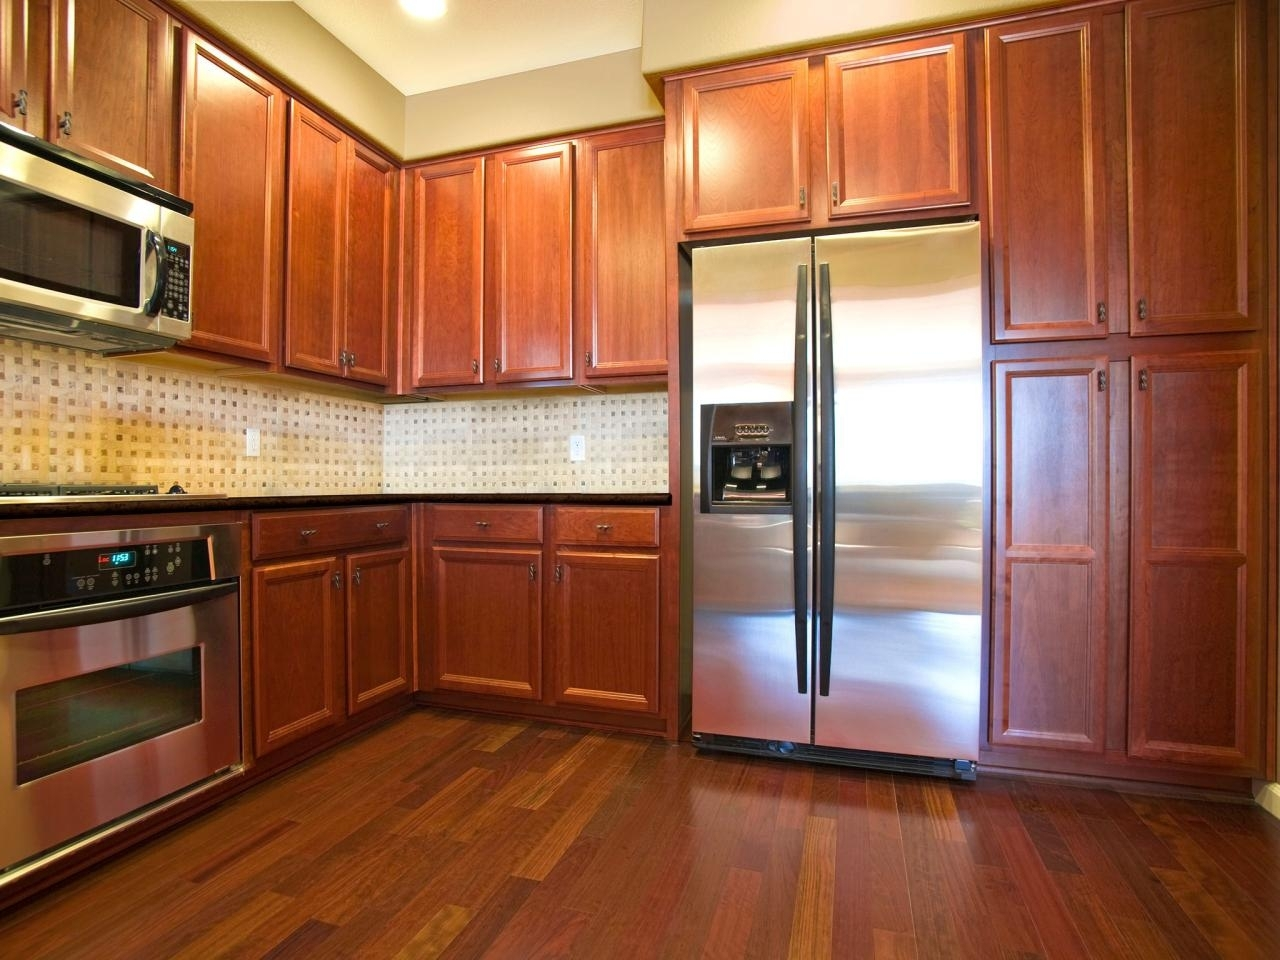 10 Fantastic Kitchen Color Ideas With Oak Cabinets %name 2020